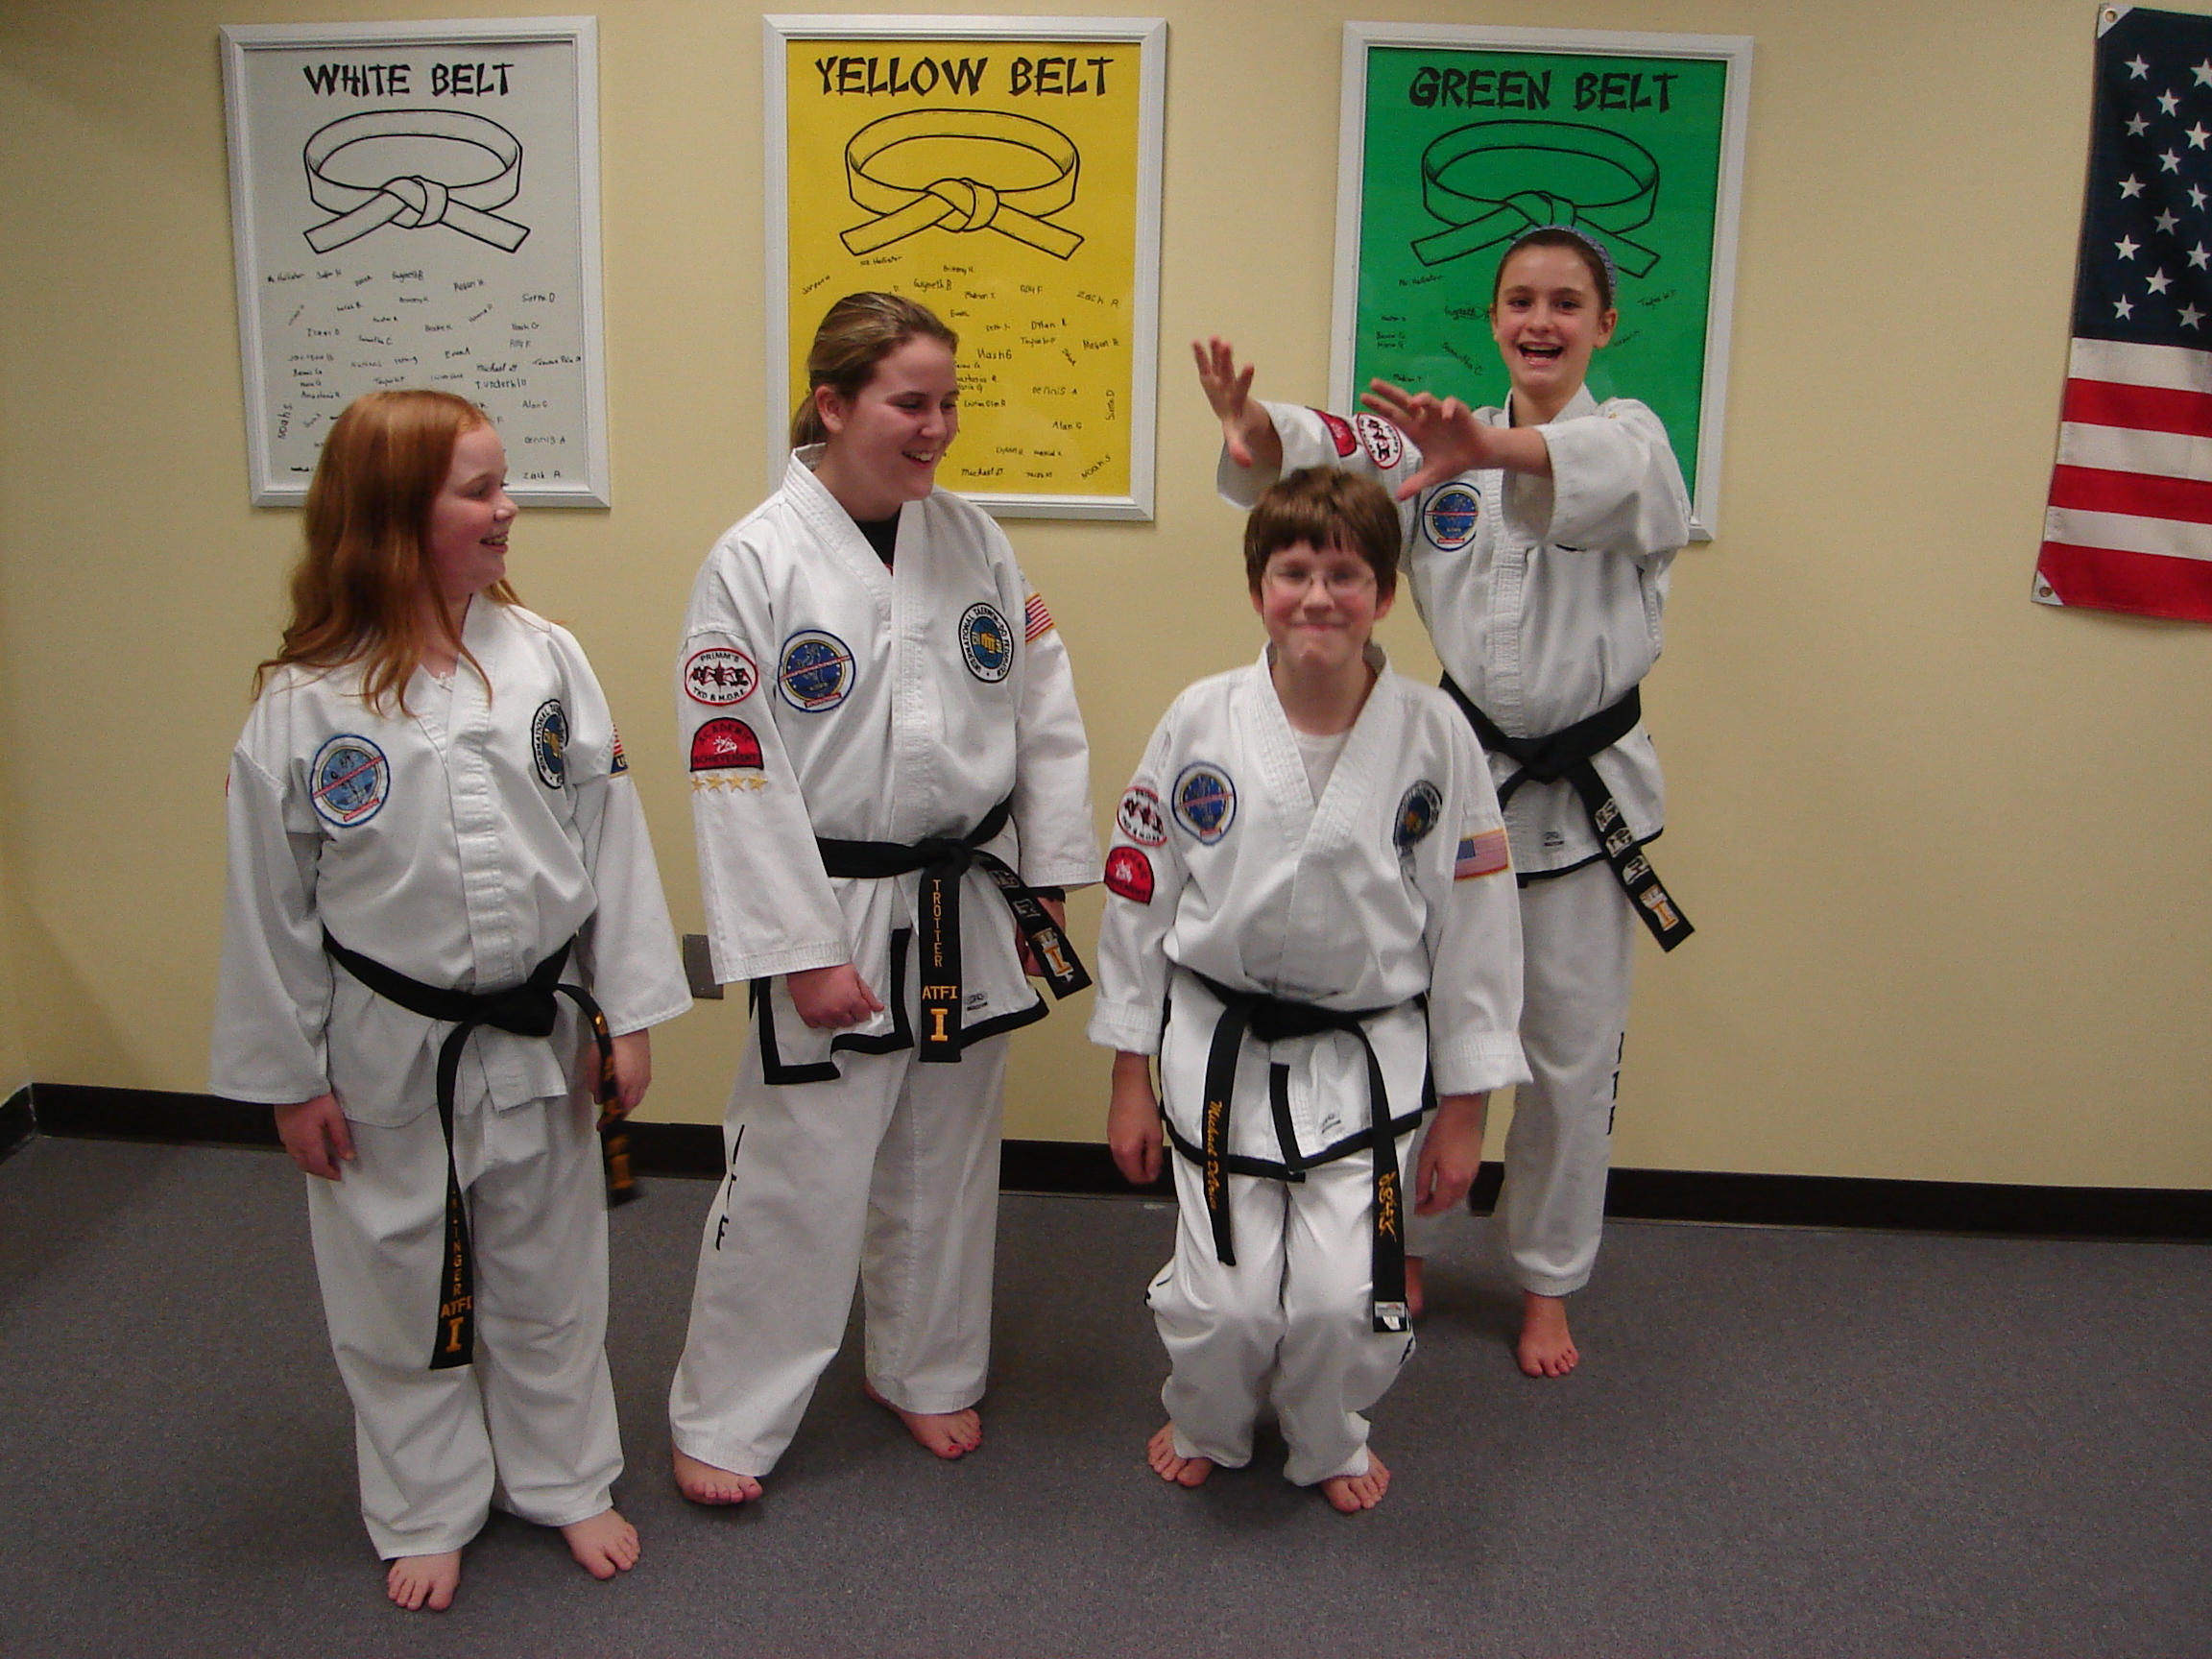 Youth 1st degree black belts having fun being silly